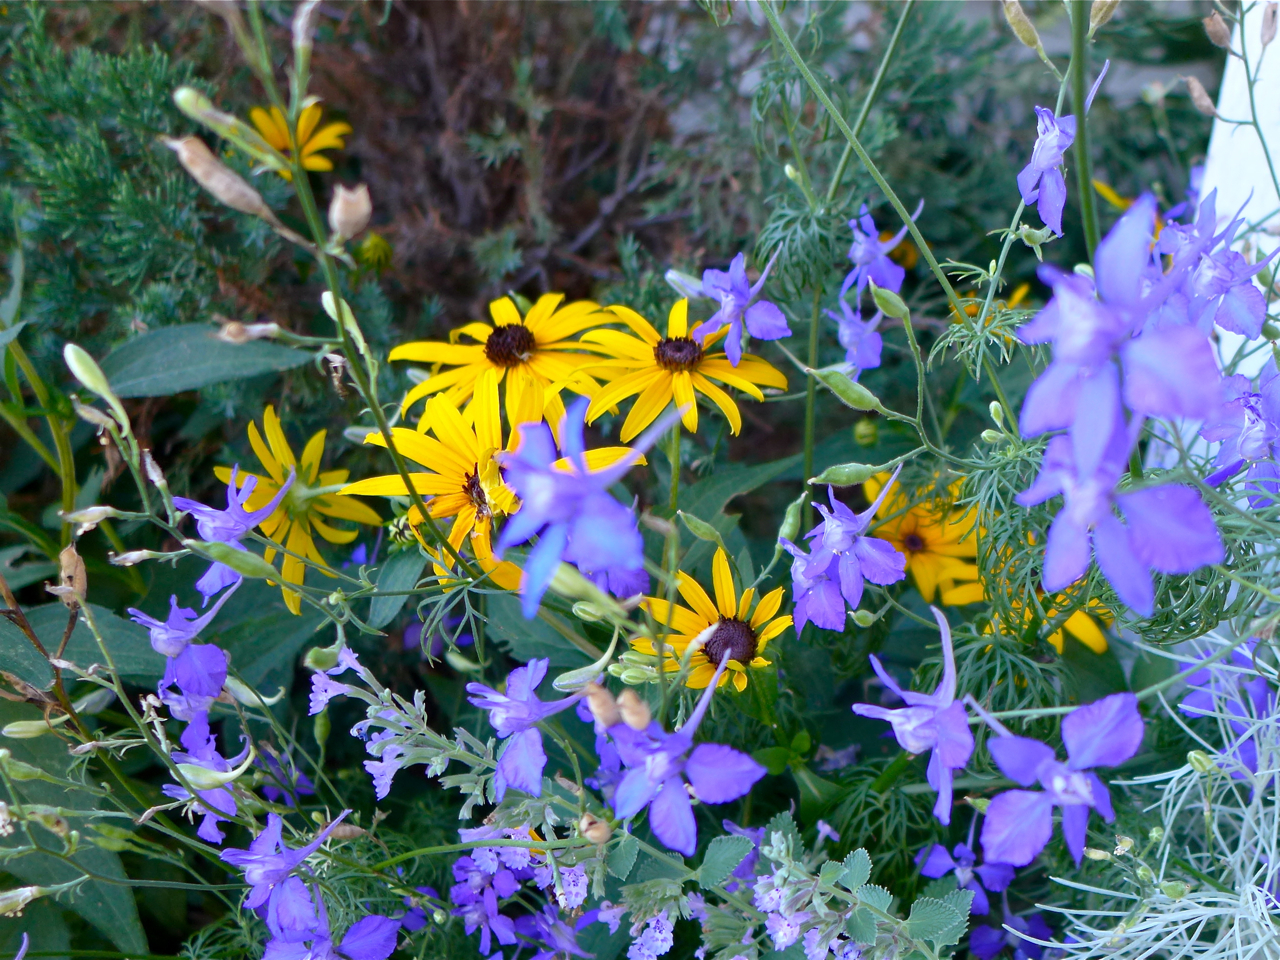 Native plants eco landscaping type perennial origin native to central and eastern us including some southern and eastern oklahoma counties exposure full sun to part shade publicscrutiny Image collections